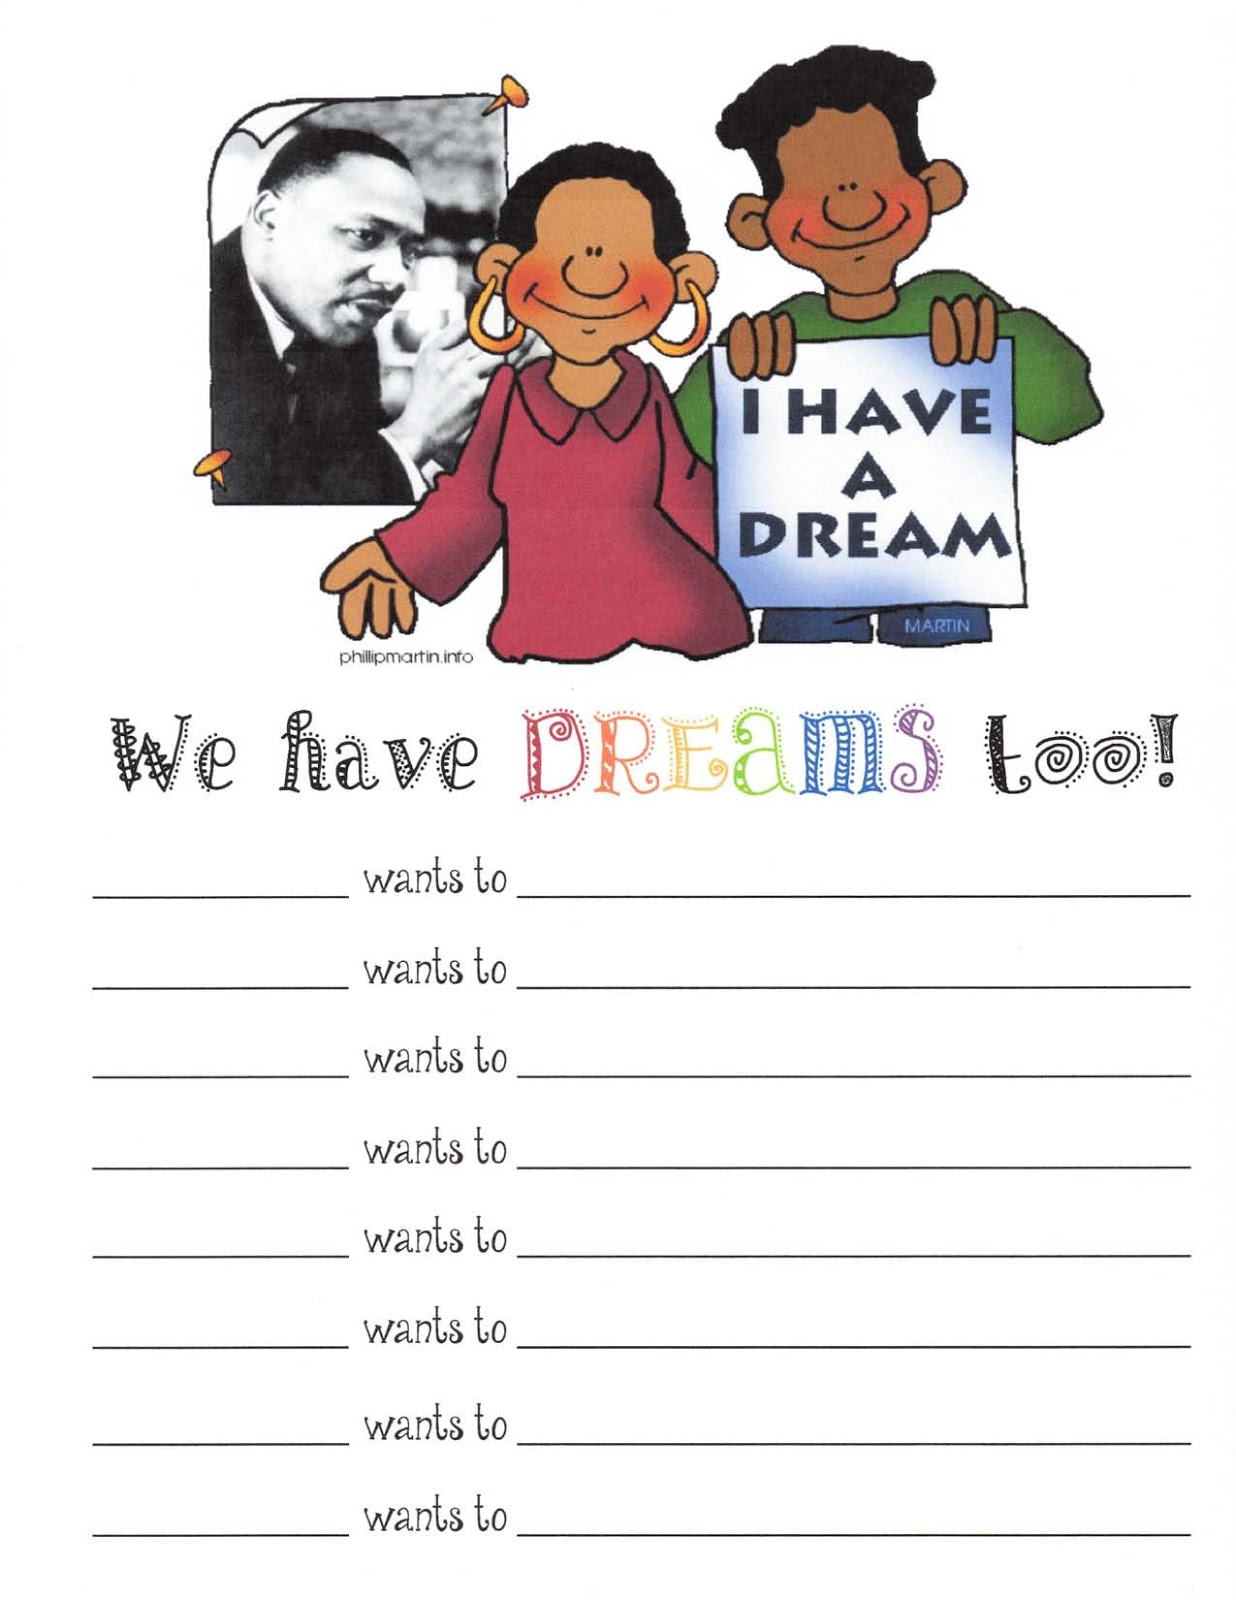 a dream essay writing martin luther king i have a dream speech  martin luther king i have a dream speech analysis essay martin luther king i have a